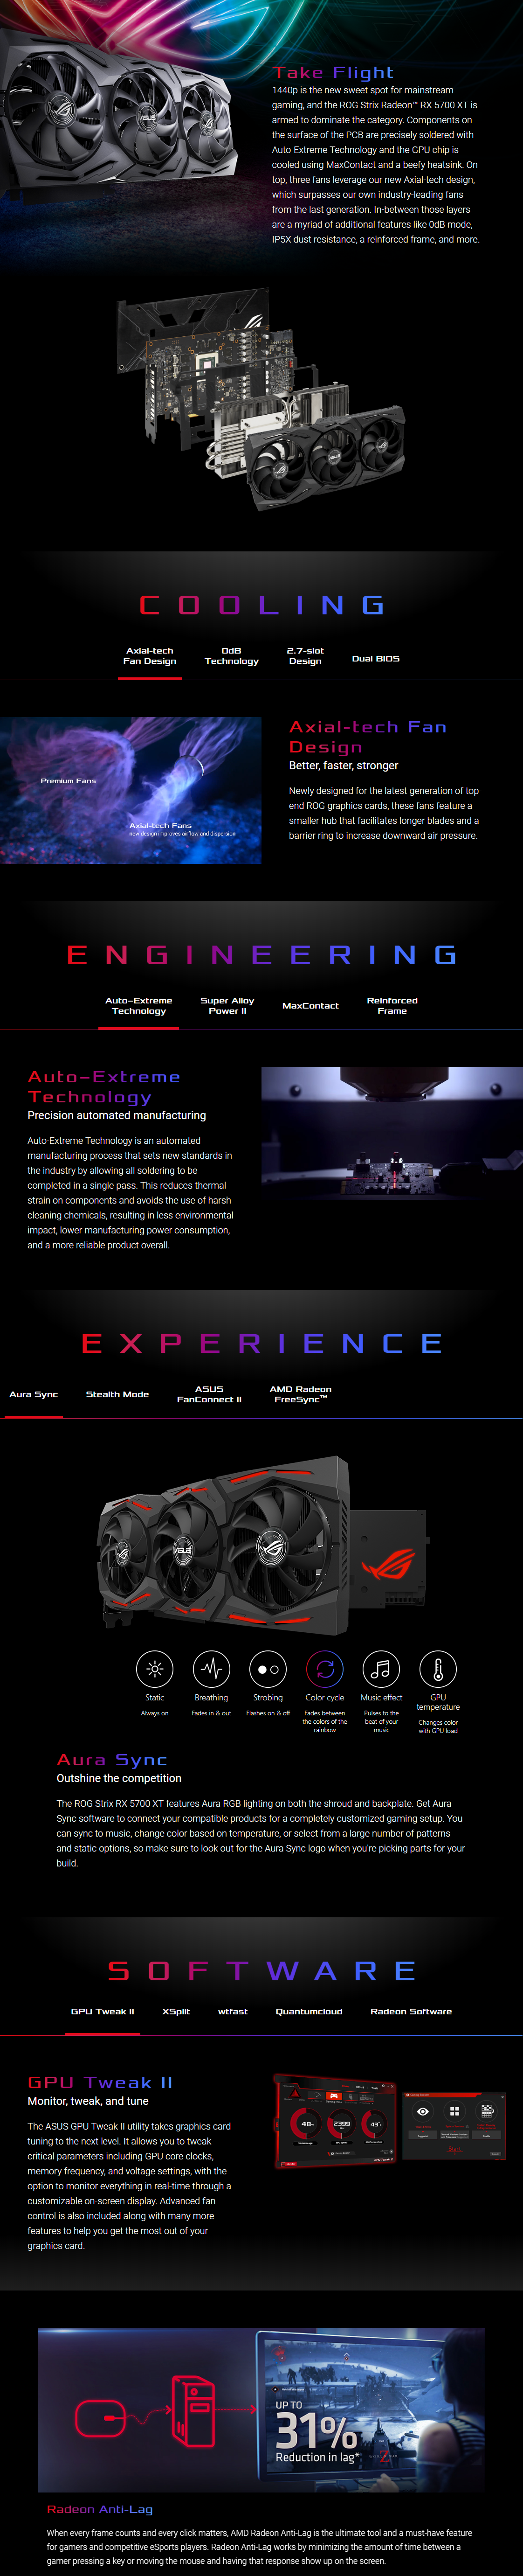 A large marketing image providing additional information about the product ASUS Radeon RX 5700 XT ROG Strix OC 8GB GDDR6 - Additional alt info not provided